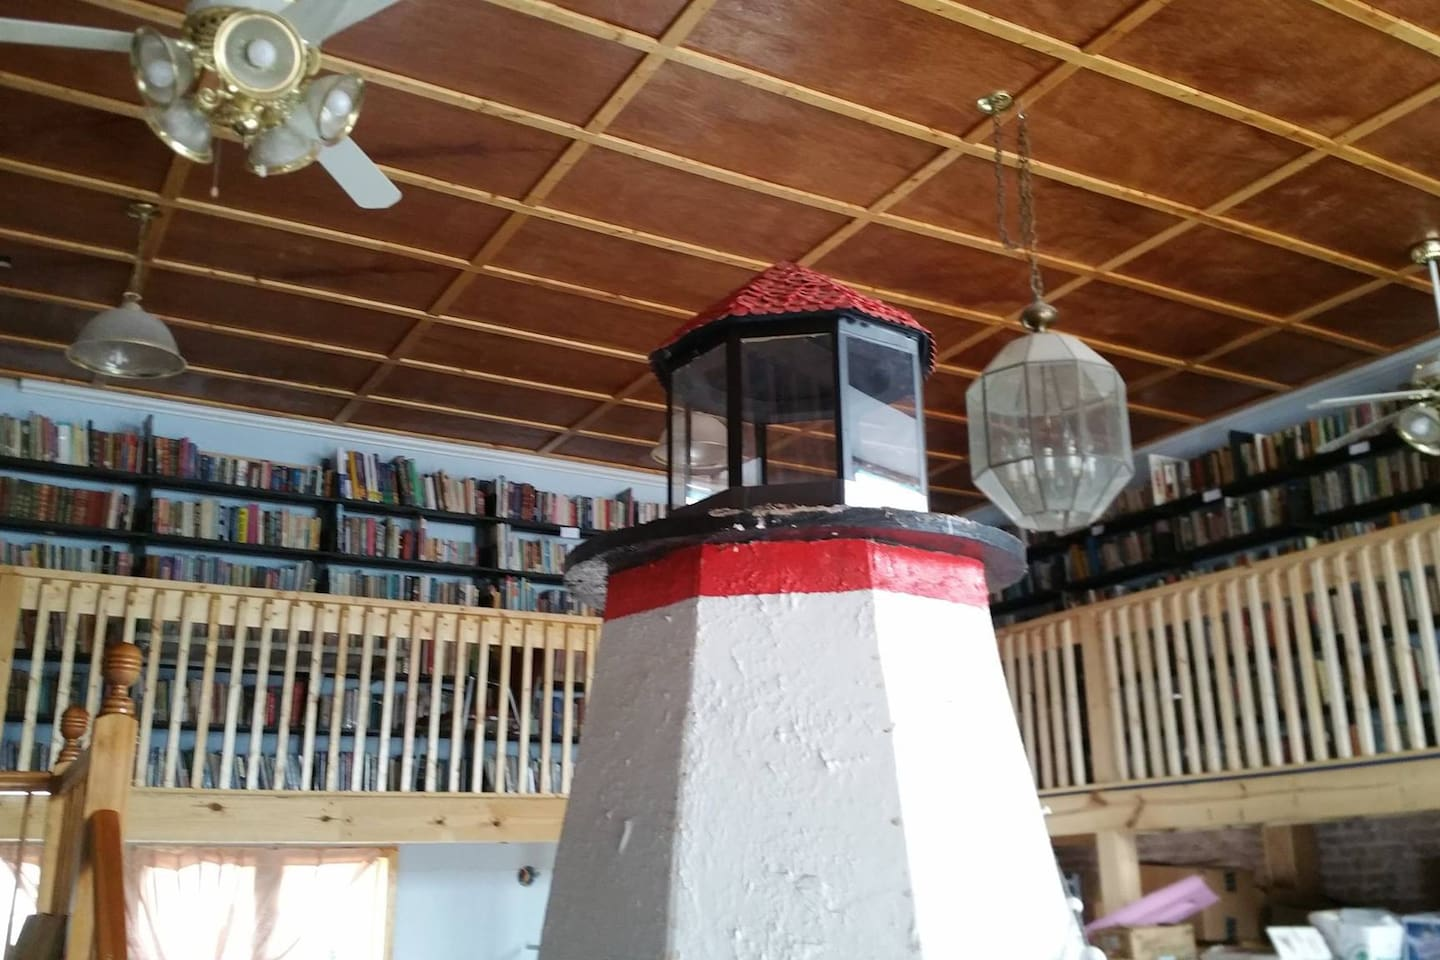 Upstairs there is a wrap-around library section. Kids love the spiral staircase leading up to the book area.